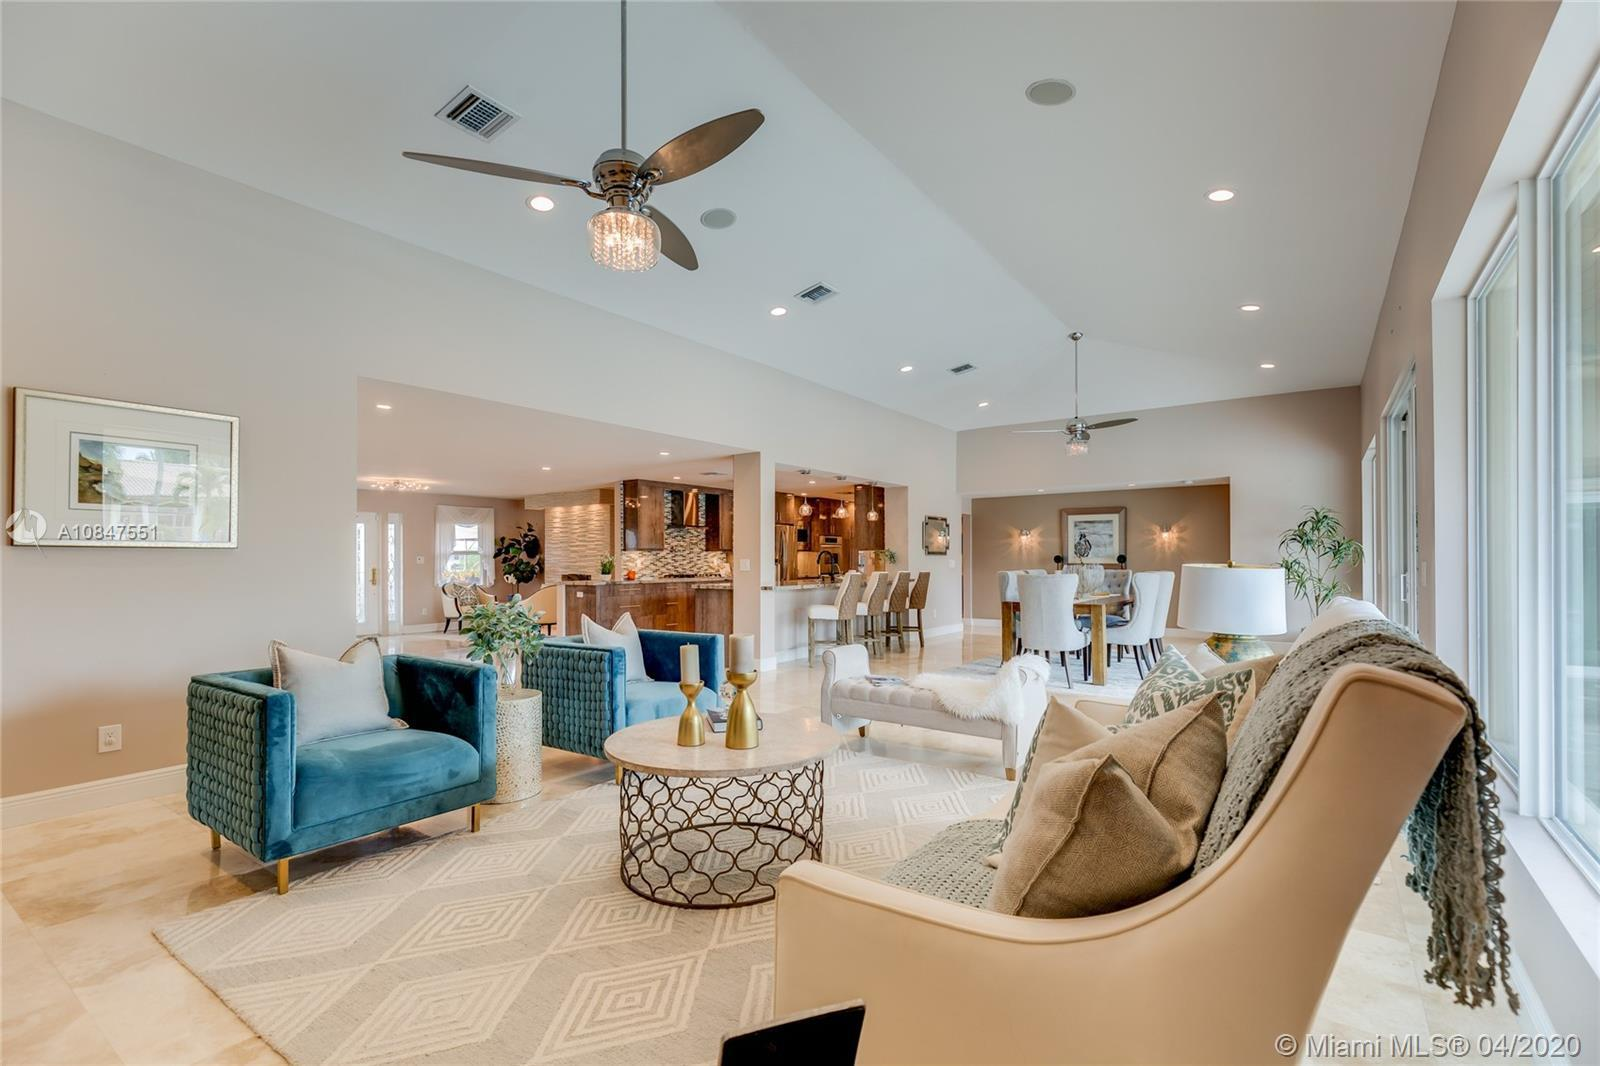 Best waterfront value in gated prestigious Riviera Isles! This beautiful home features a split floor